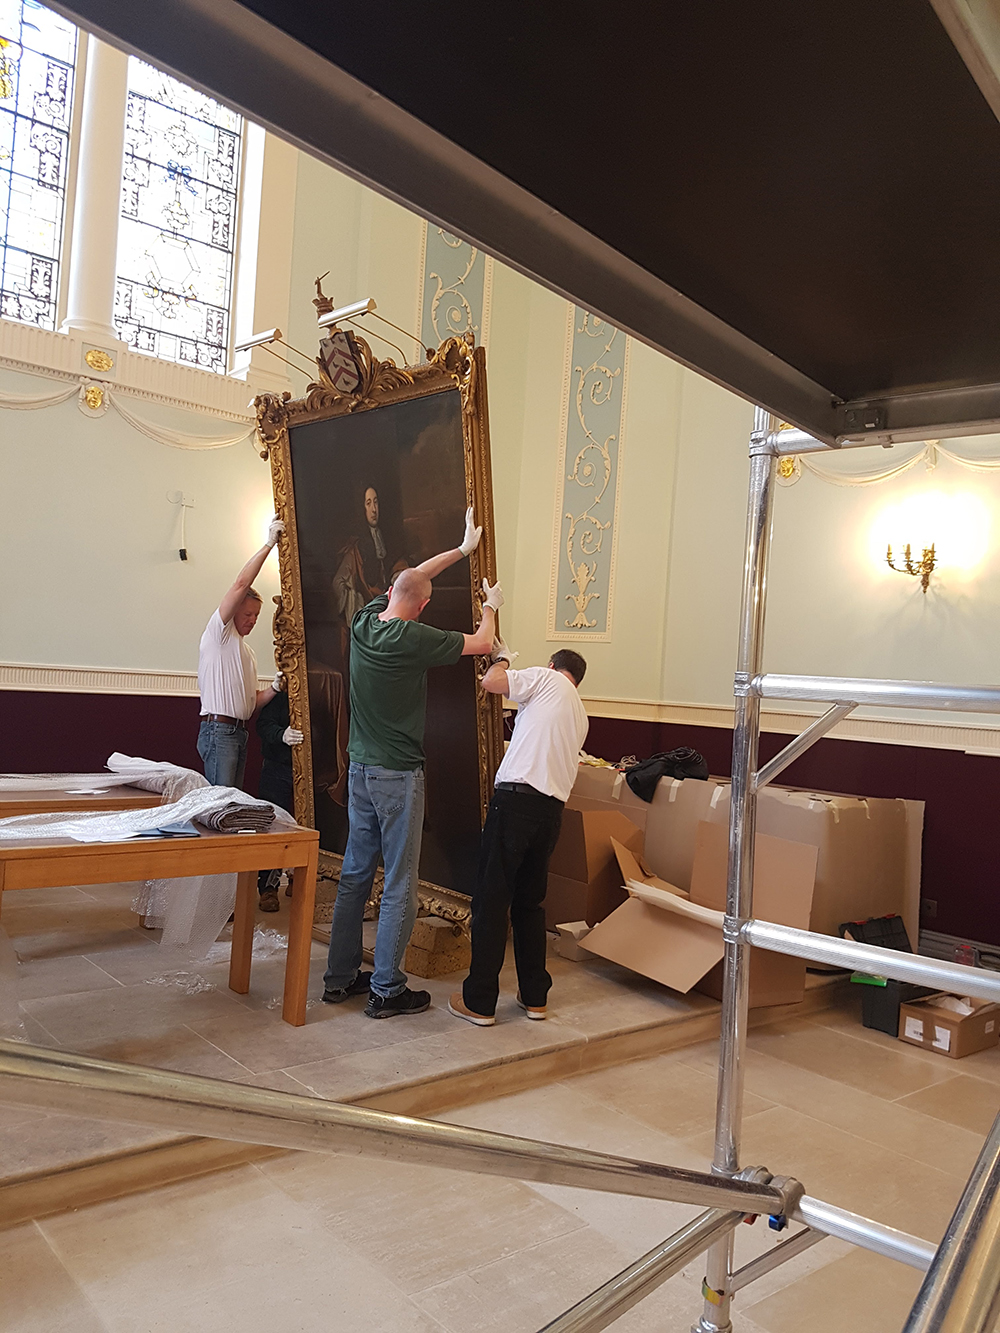 worcester college oxford picture lights by hogarth paintings being hung